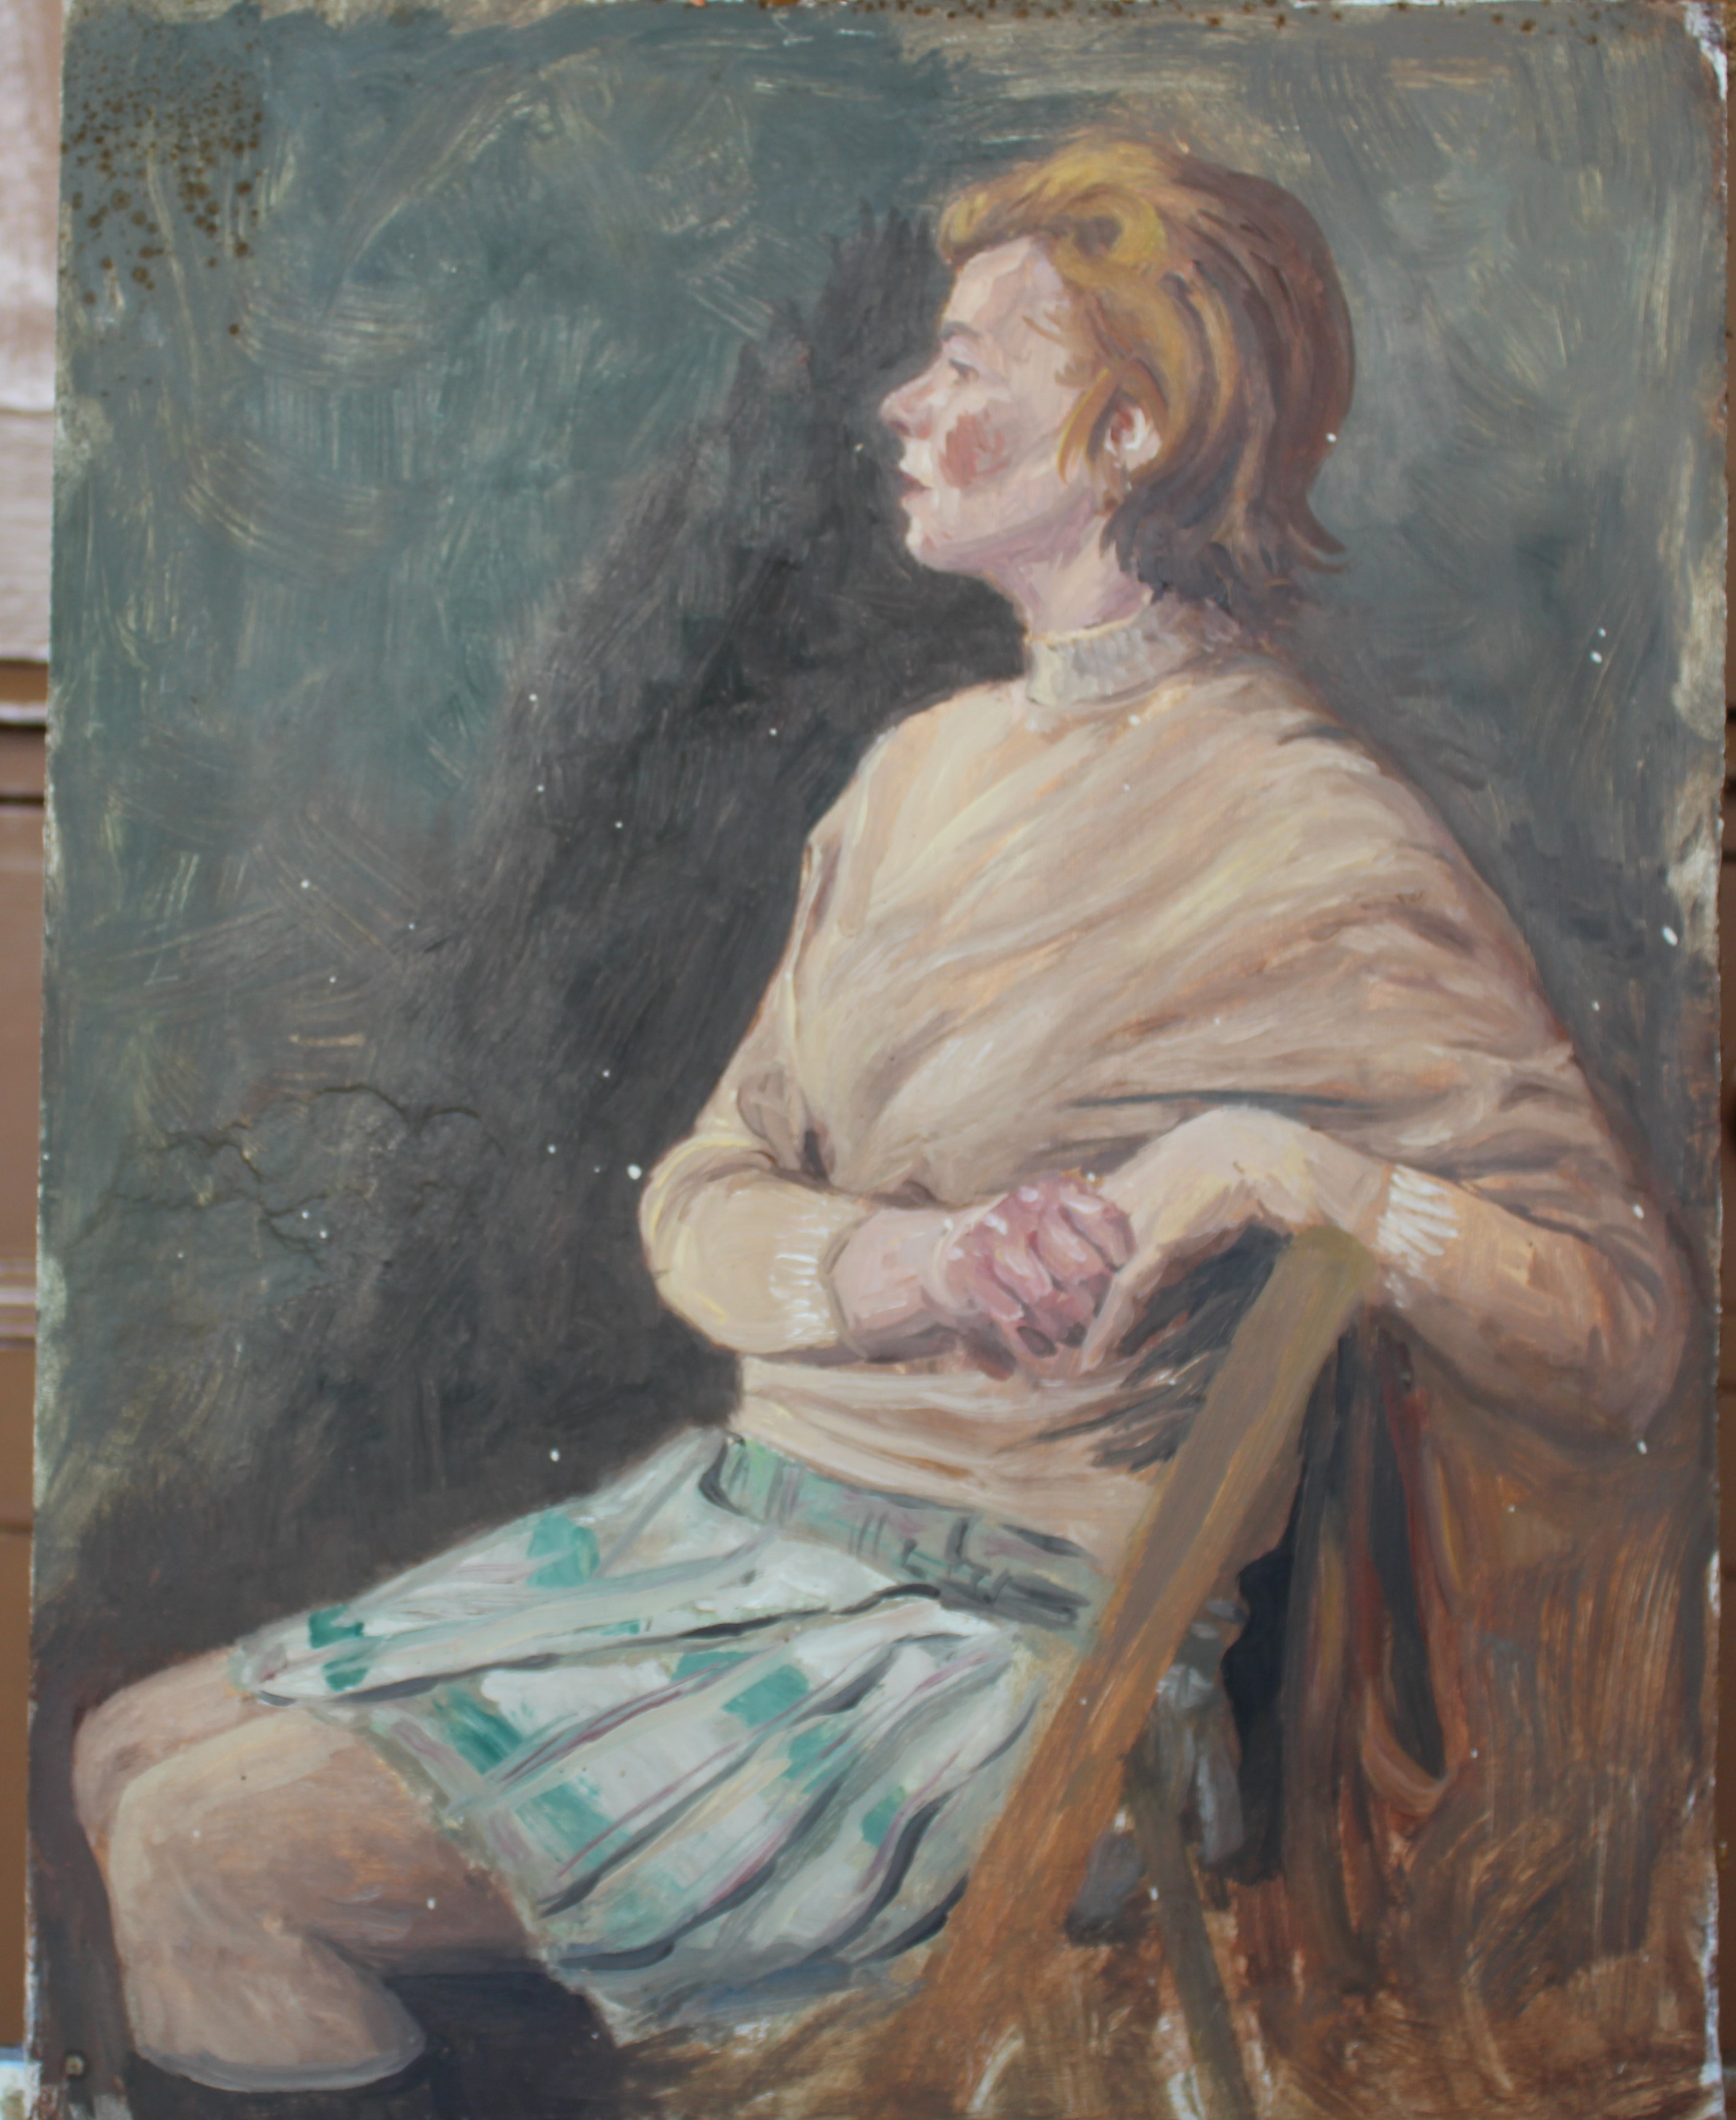 •DAY DREAM, WOMAN SEATED WEARING RED JACKET AND DRESS Signed unframed oil on board, 60 x 44.3cm, - Image 6 of 6